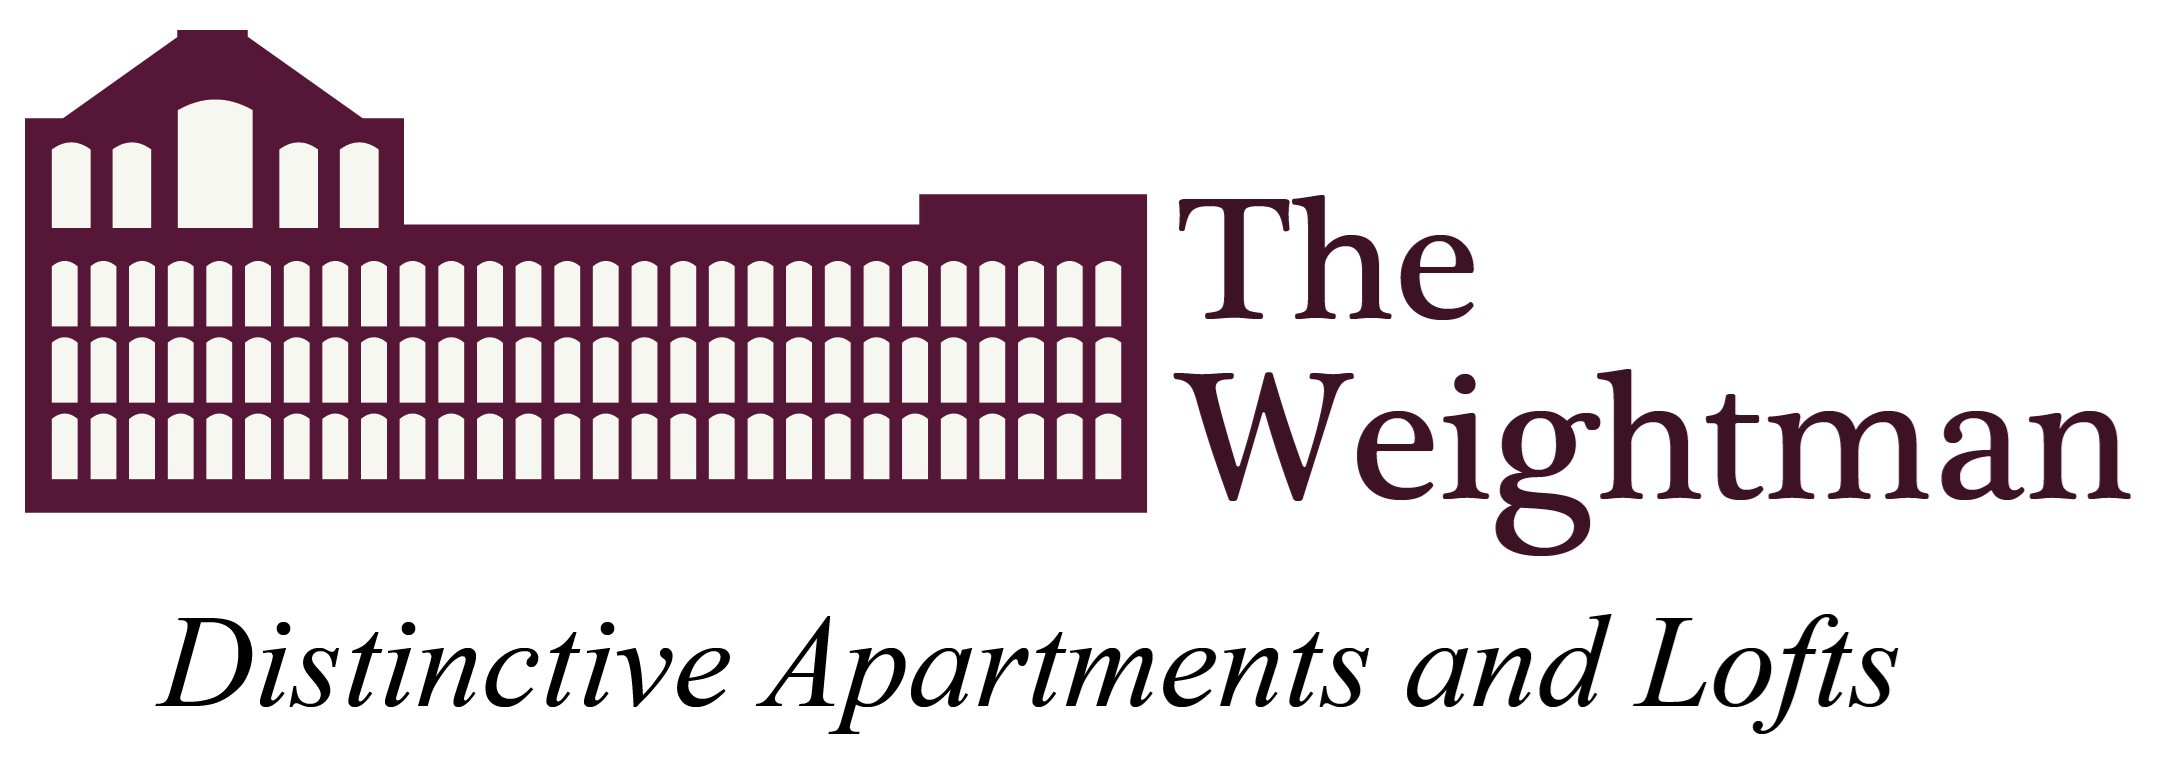 Apartment Logo in Williamsport, PA | The Weightman | Property Management, Inc.